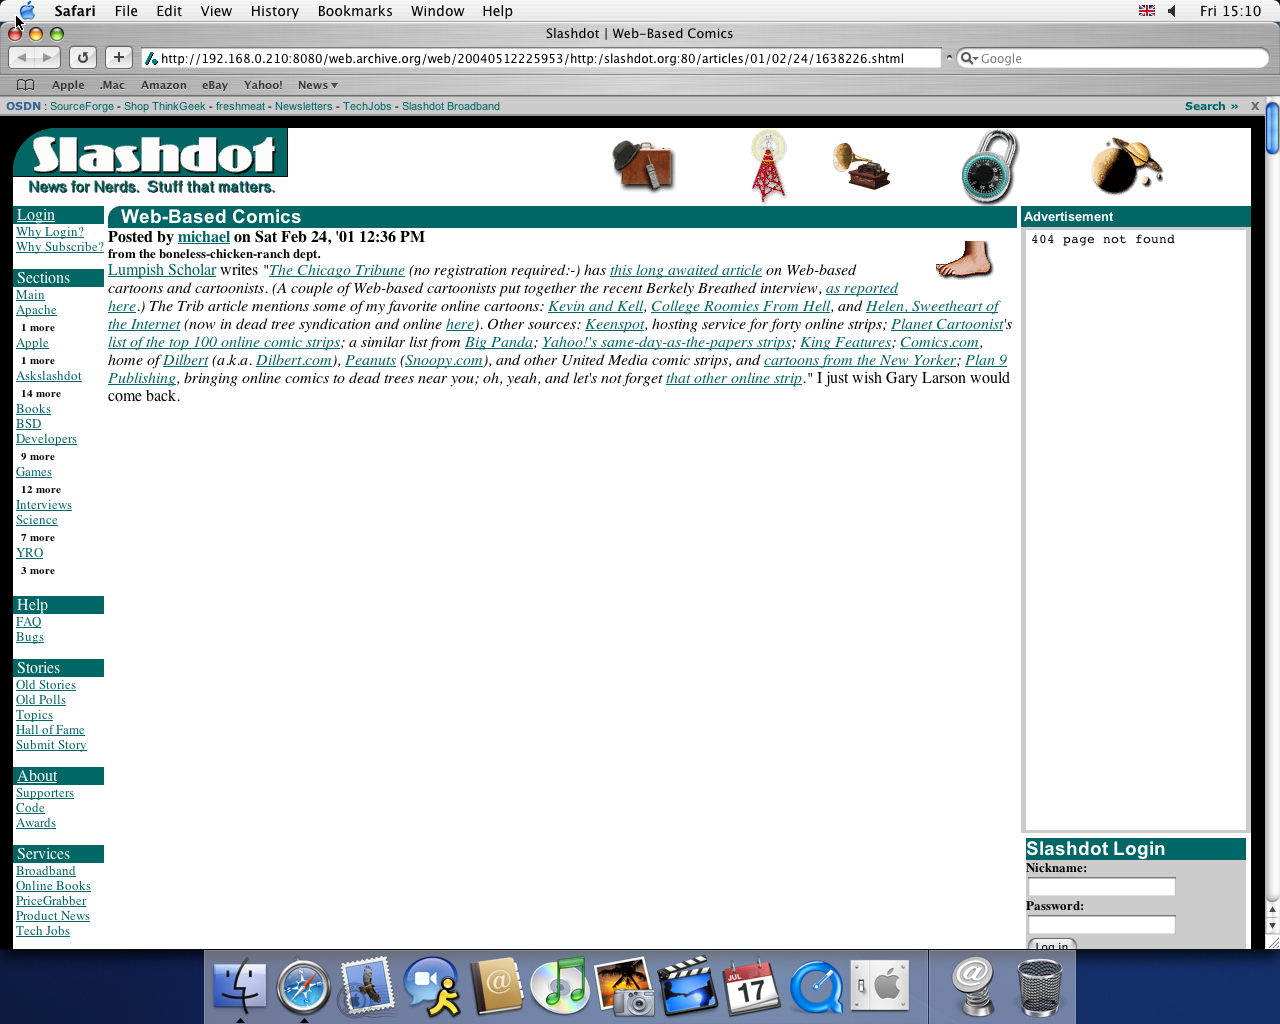 OS X 10.3 PPC with Safari 1.1 displaying a page from Slashdot archived at May 12, 2004 at 22:59:53